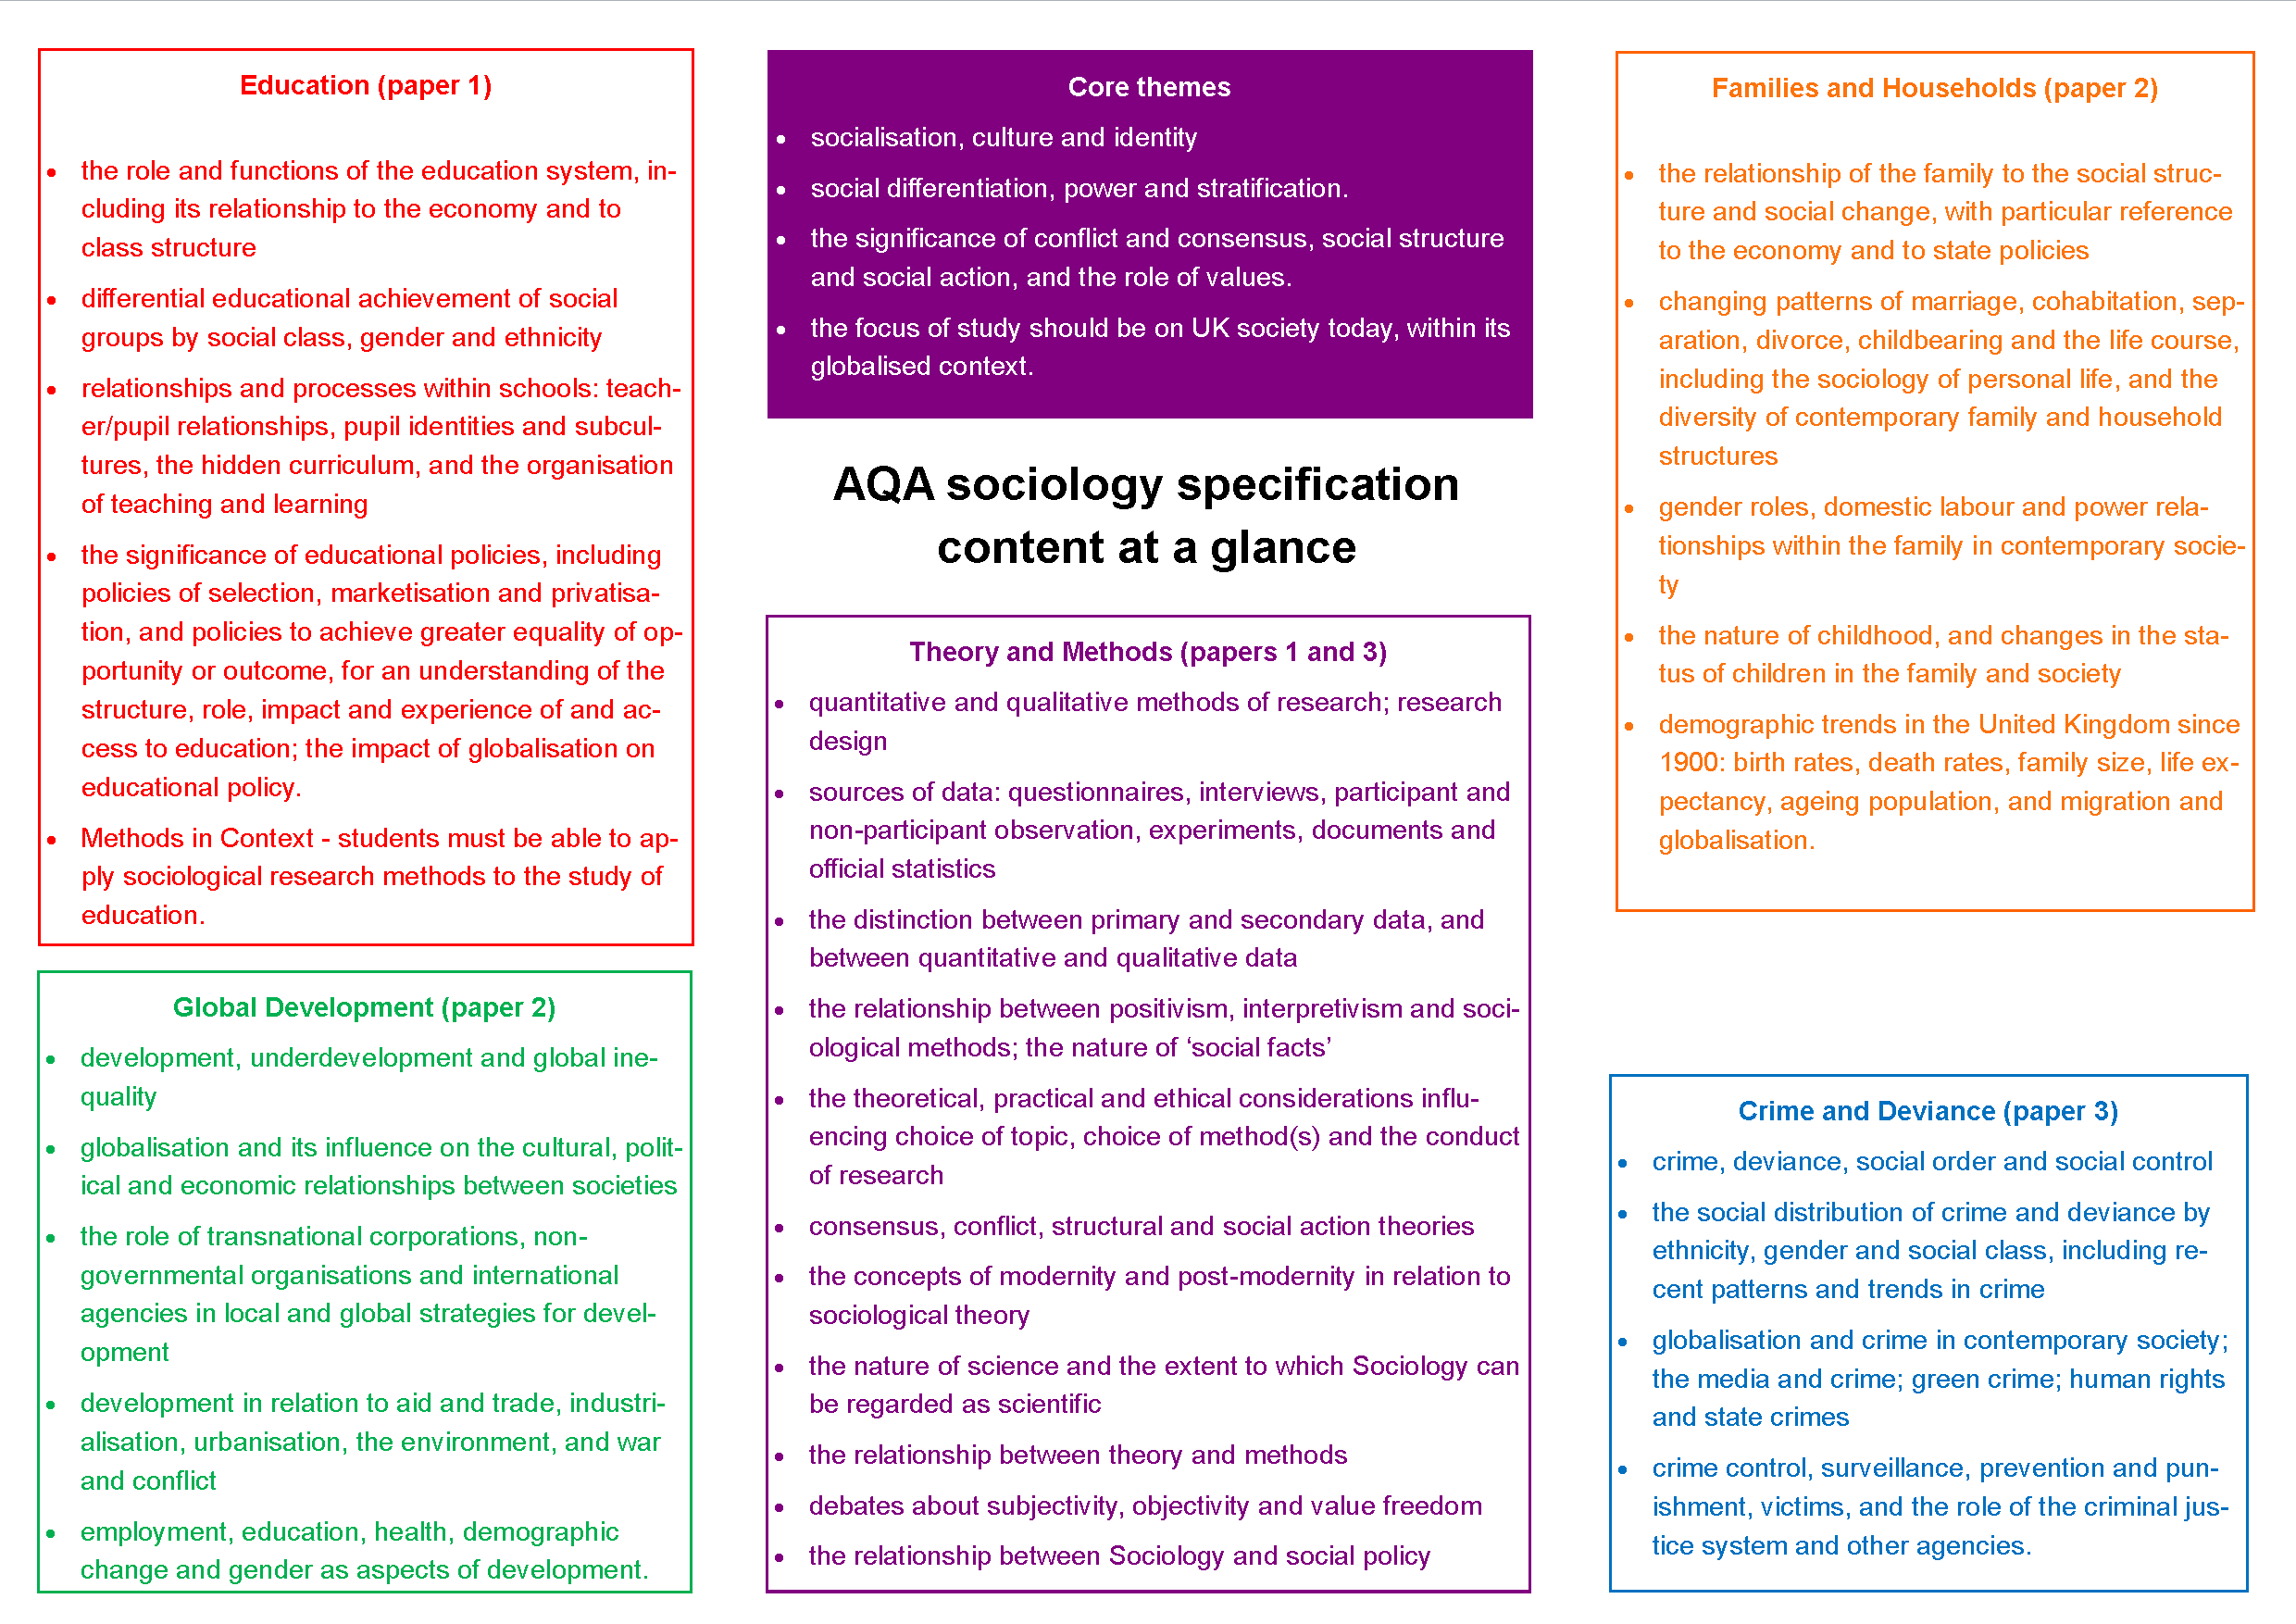 002 Aqa Sociology Specification Content At Glance1 Research Paper Methods Past Fantastic Papers Gcse Questions Full